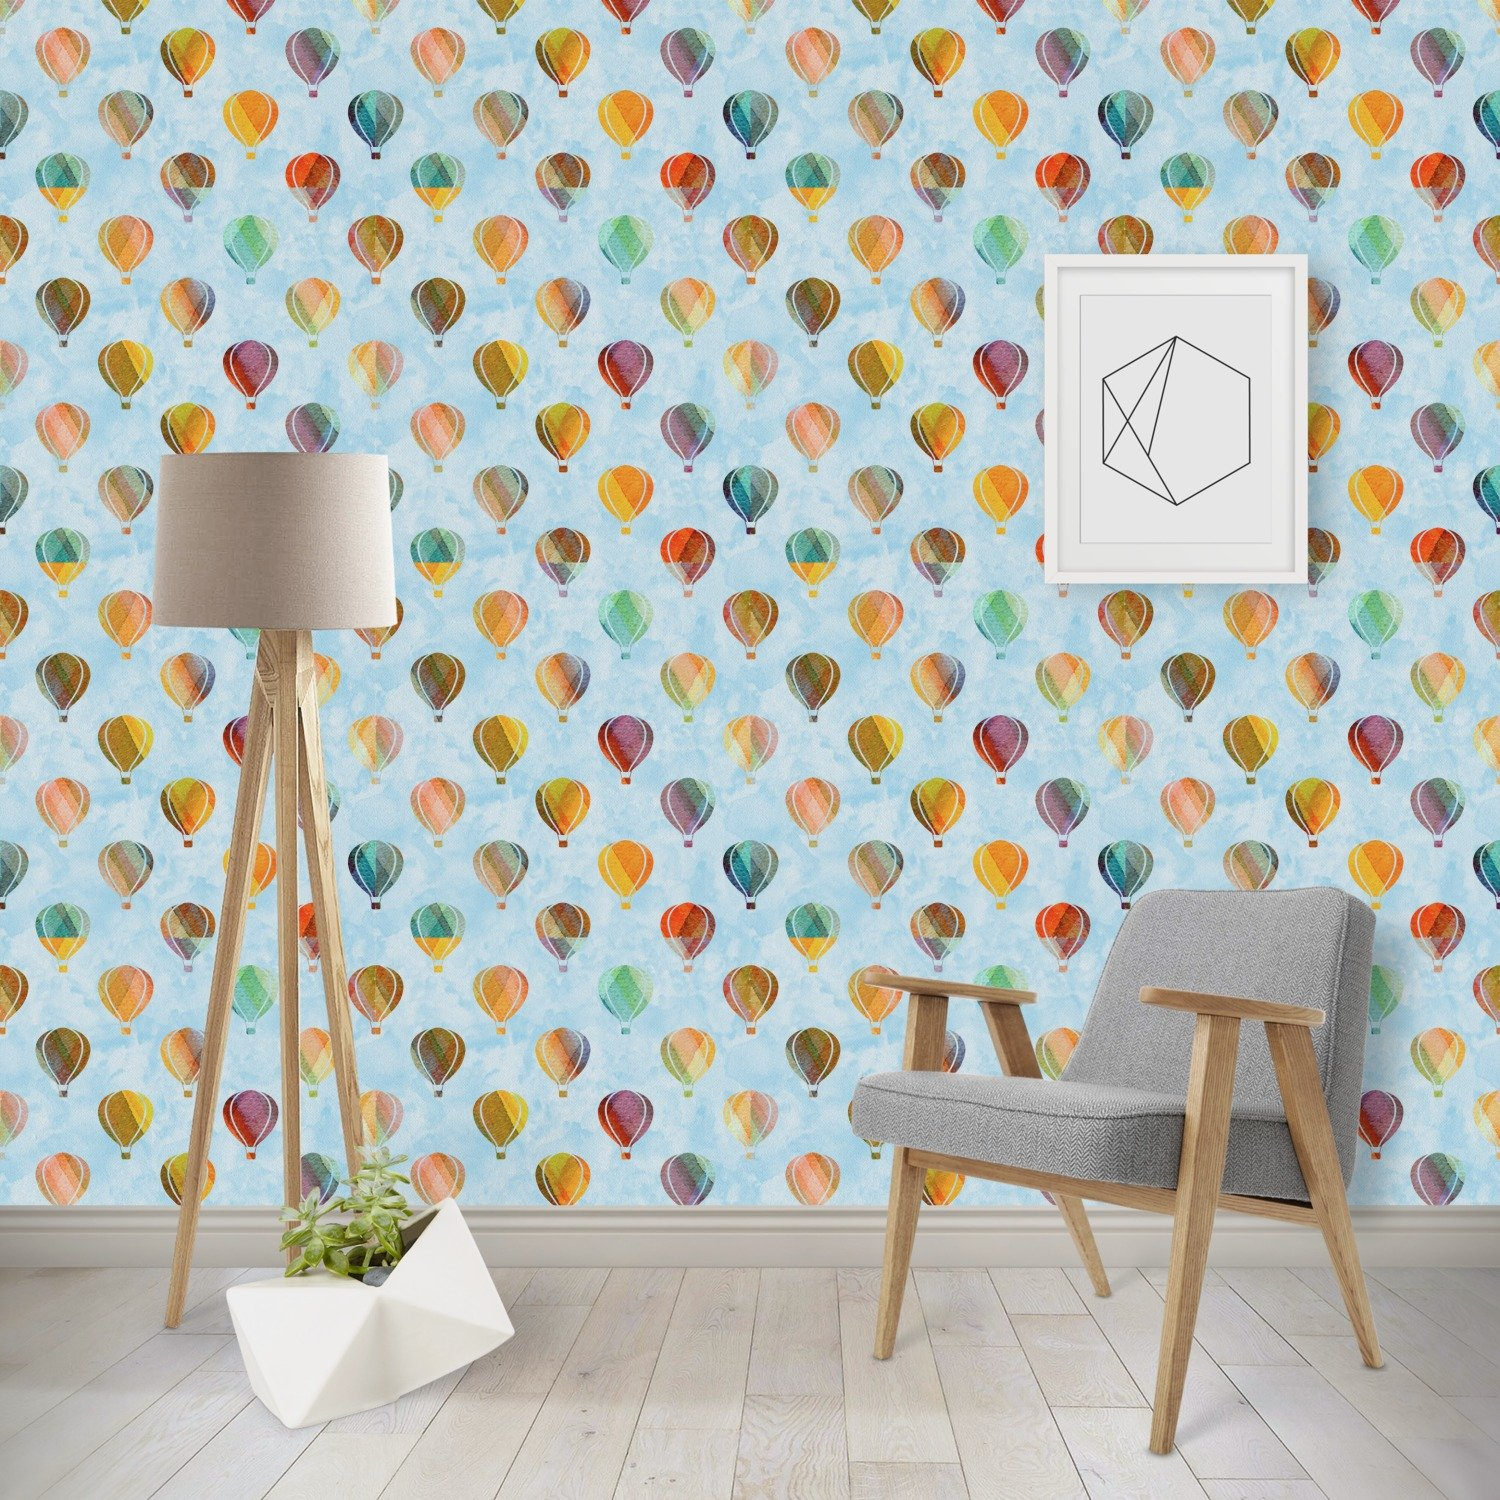 Watercolor Hot Air Balloons Wallpaper & Surface Covering (Peel & Stick - Repositionable)